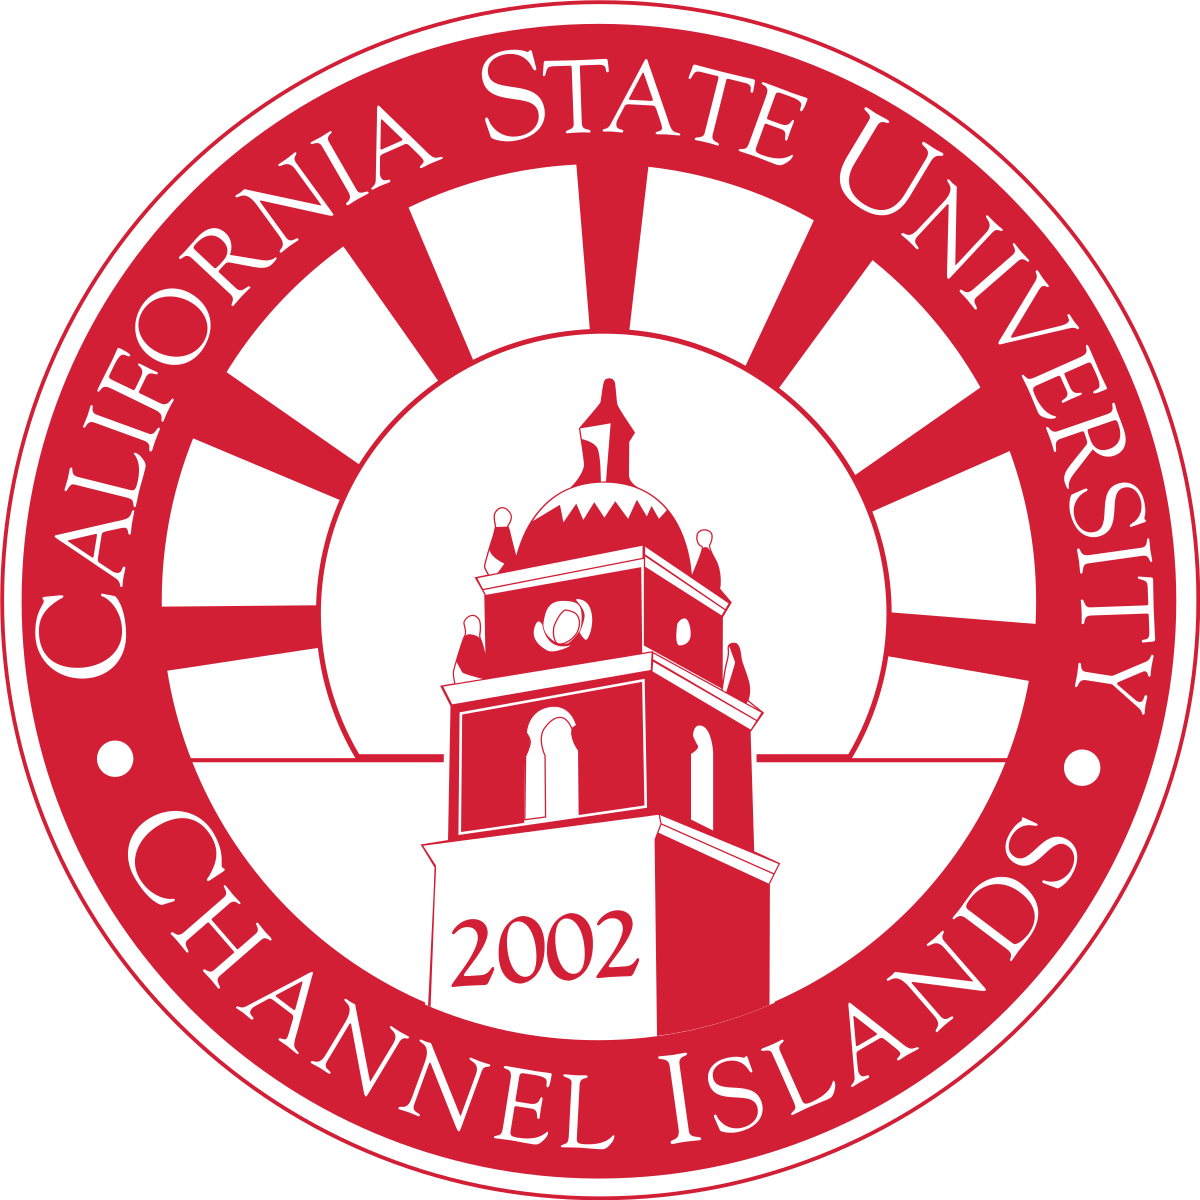 Missions clipart team achievement. California state university channel